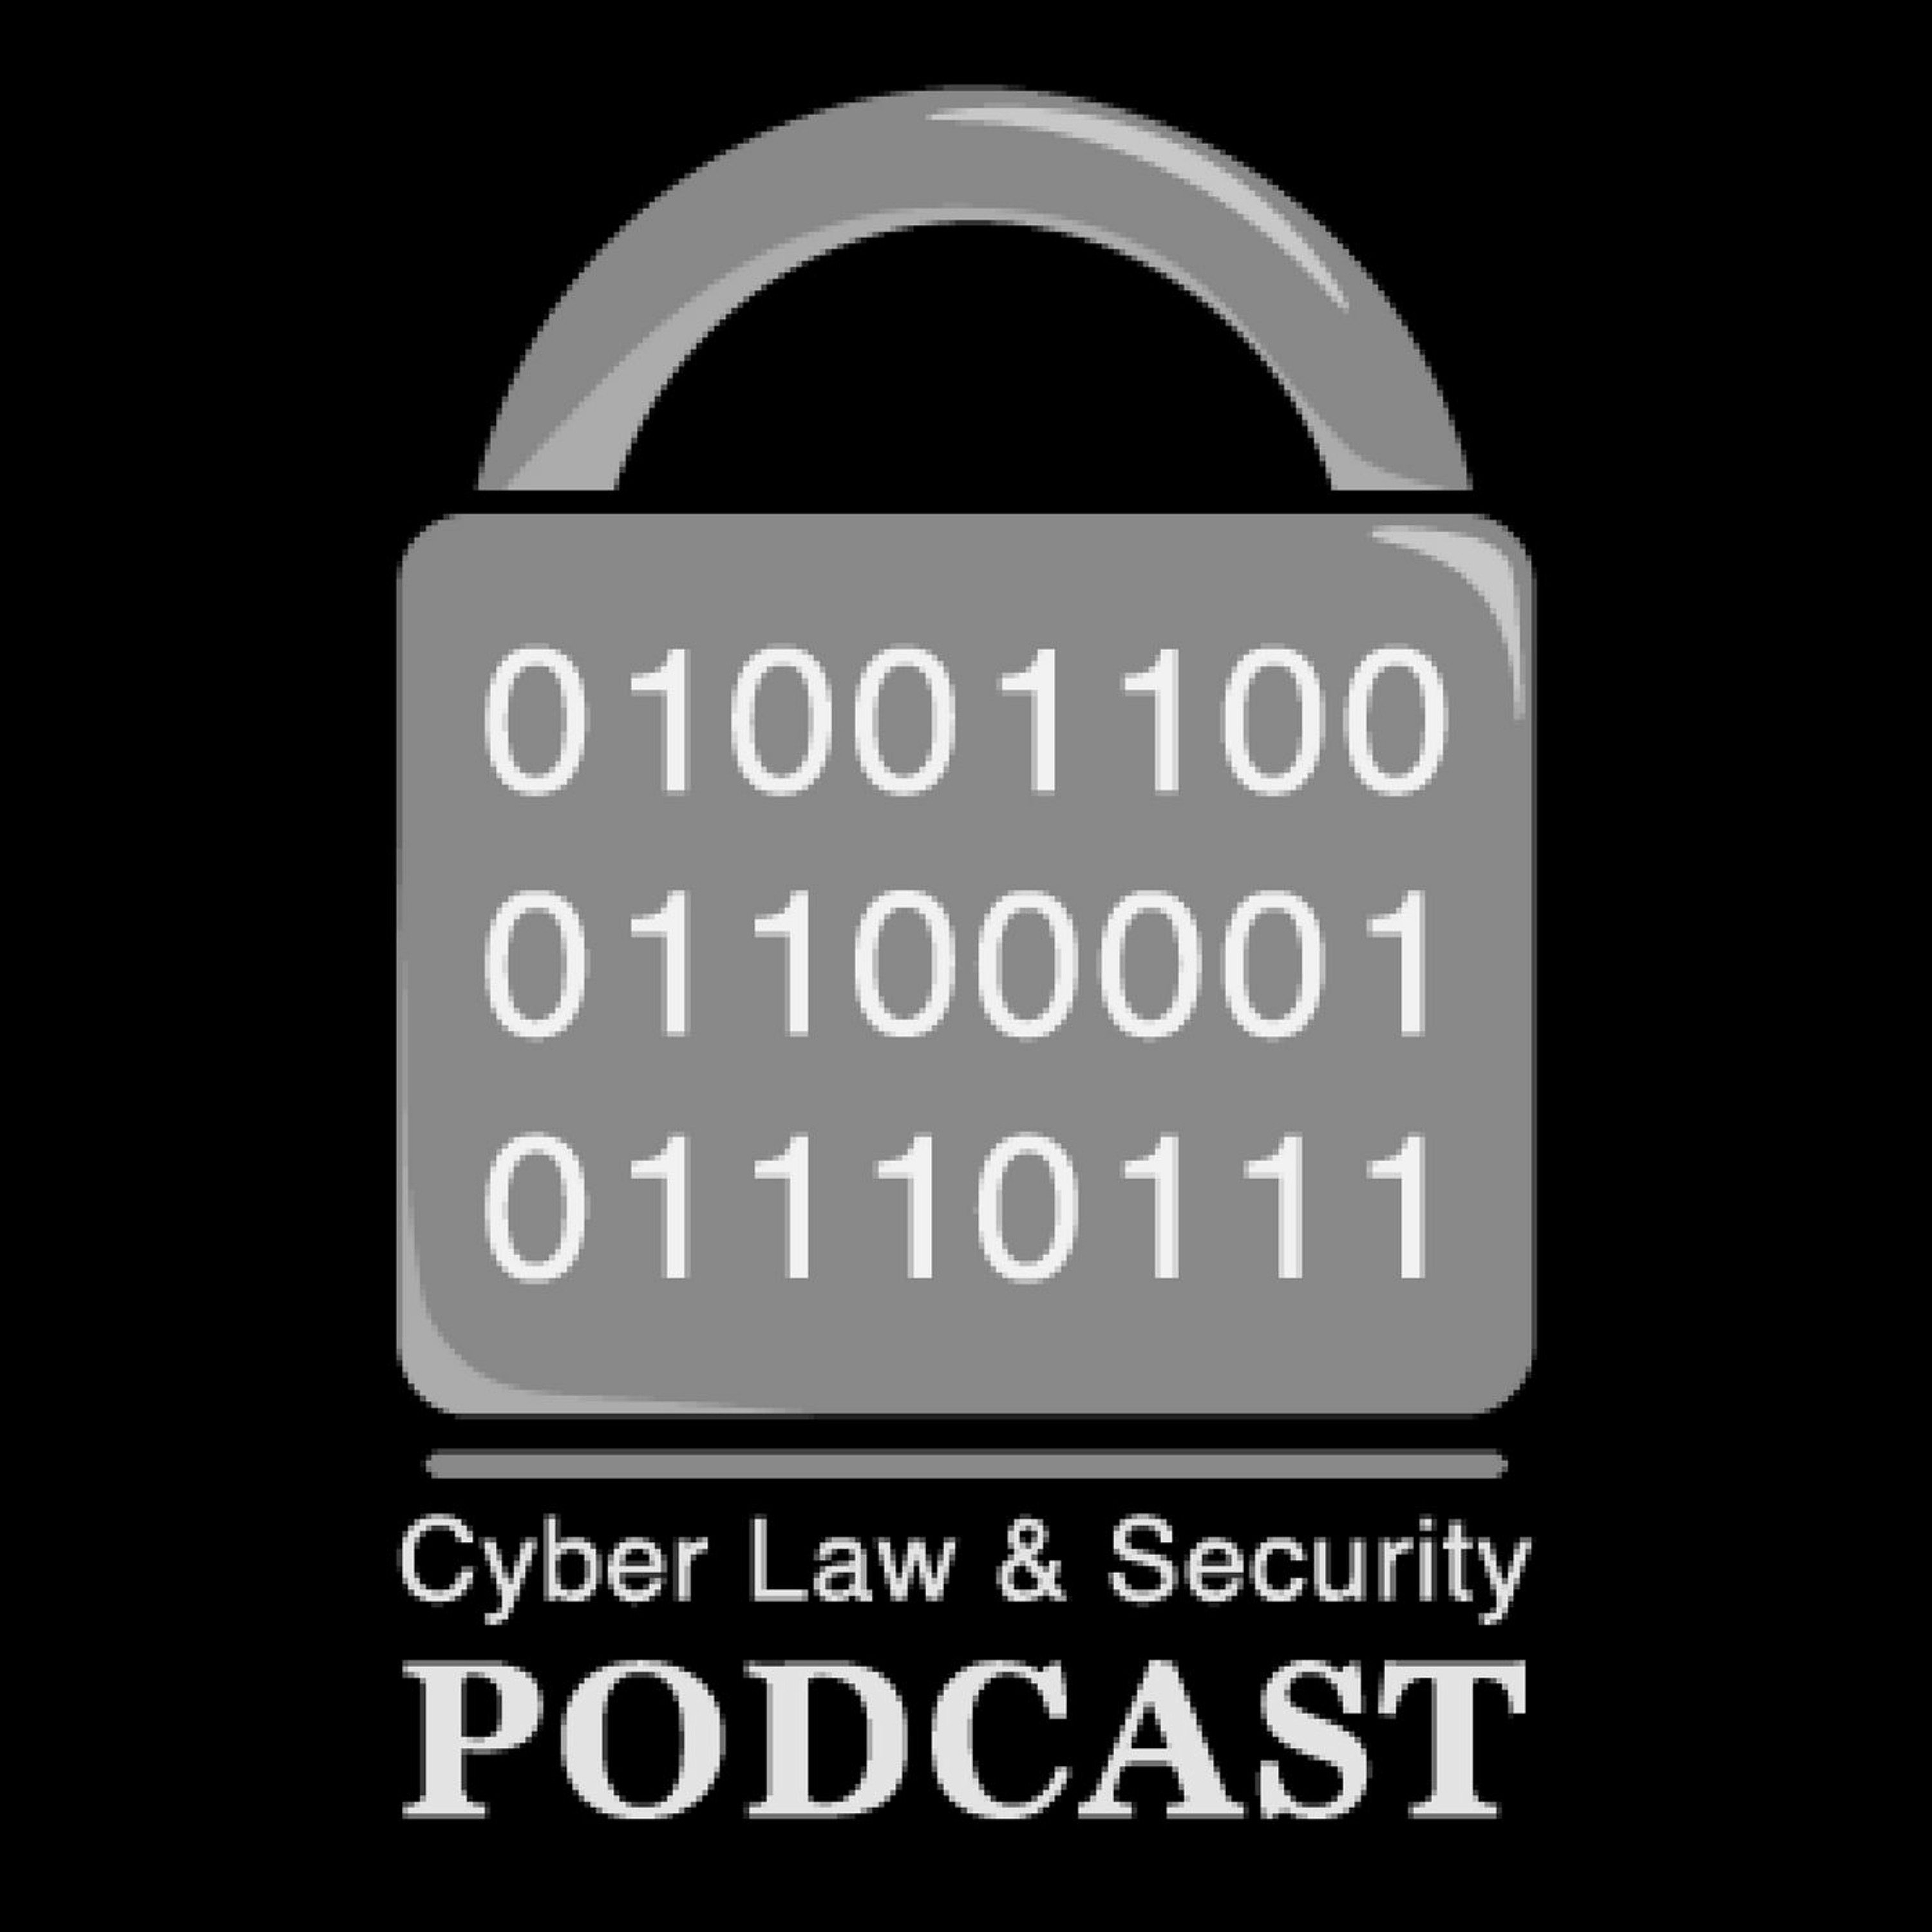 CLSP Episode 9 - 08/08/2018 - Undercover at Facebook, Content Reg, Law Firms, Cybercrime Court